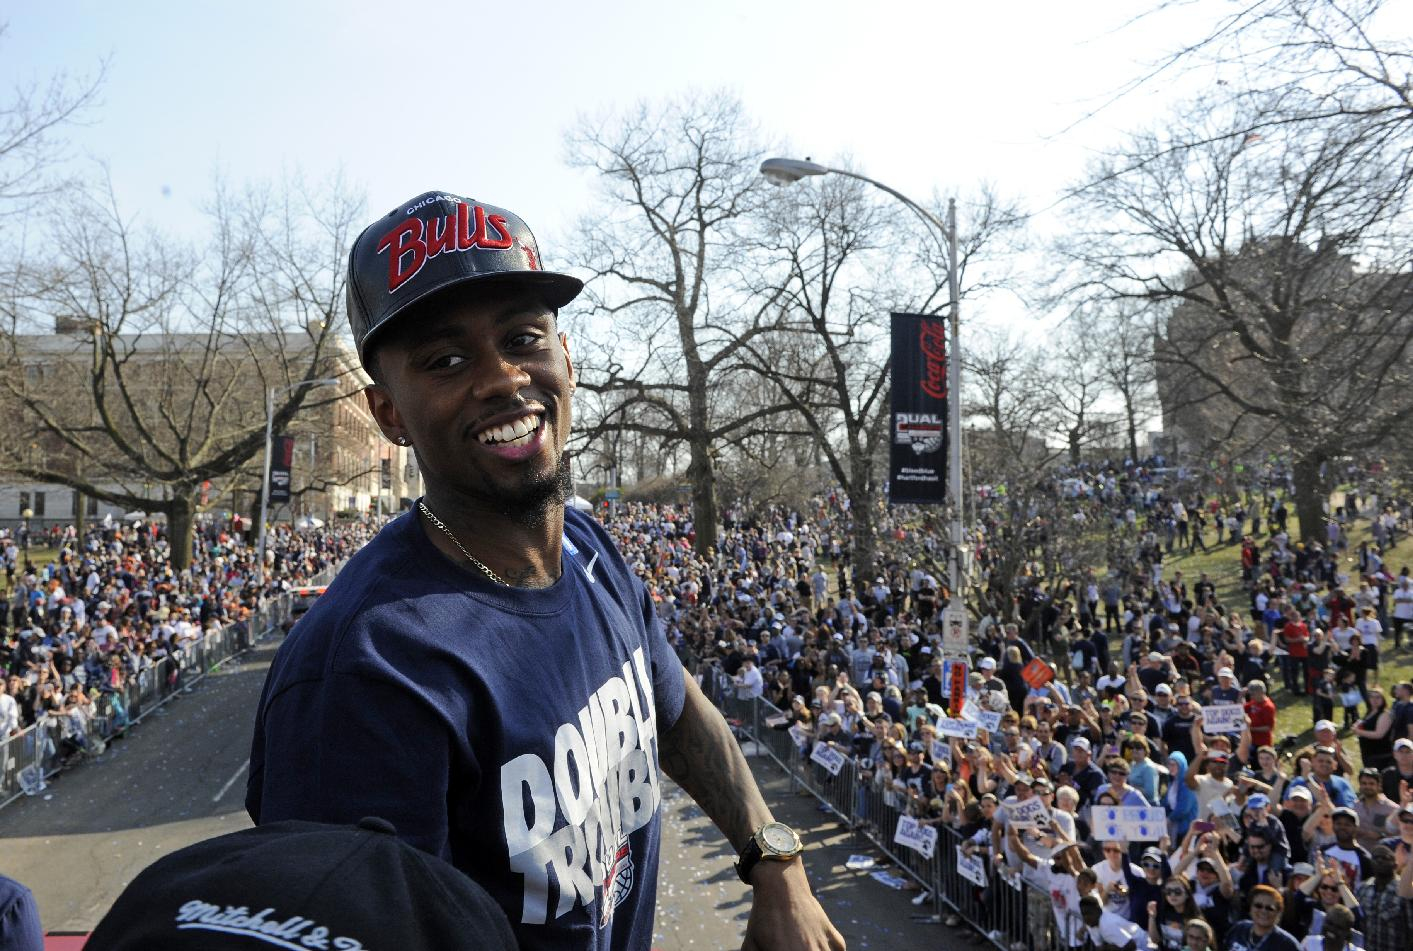 Connecticut's Ryan Boatright smiles during a parade celebrating the men's basketball team's in the NCAA tournament, in Hartford, Conn., on Sunday, April 13, 2014